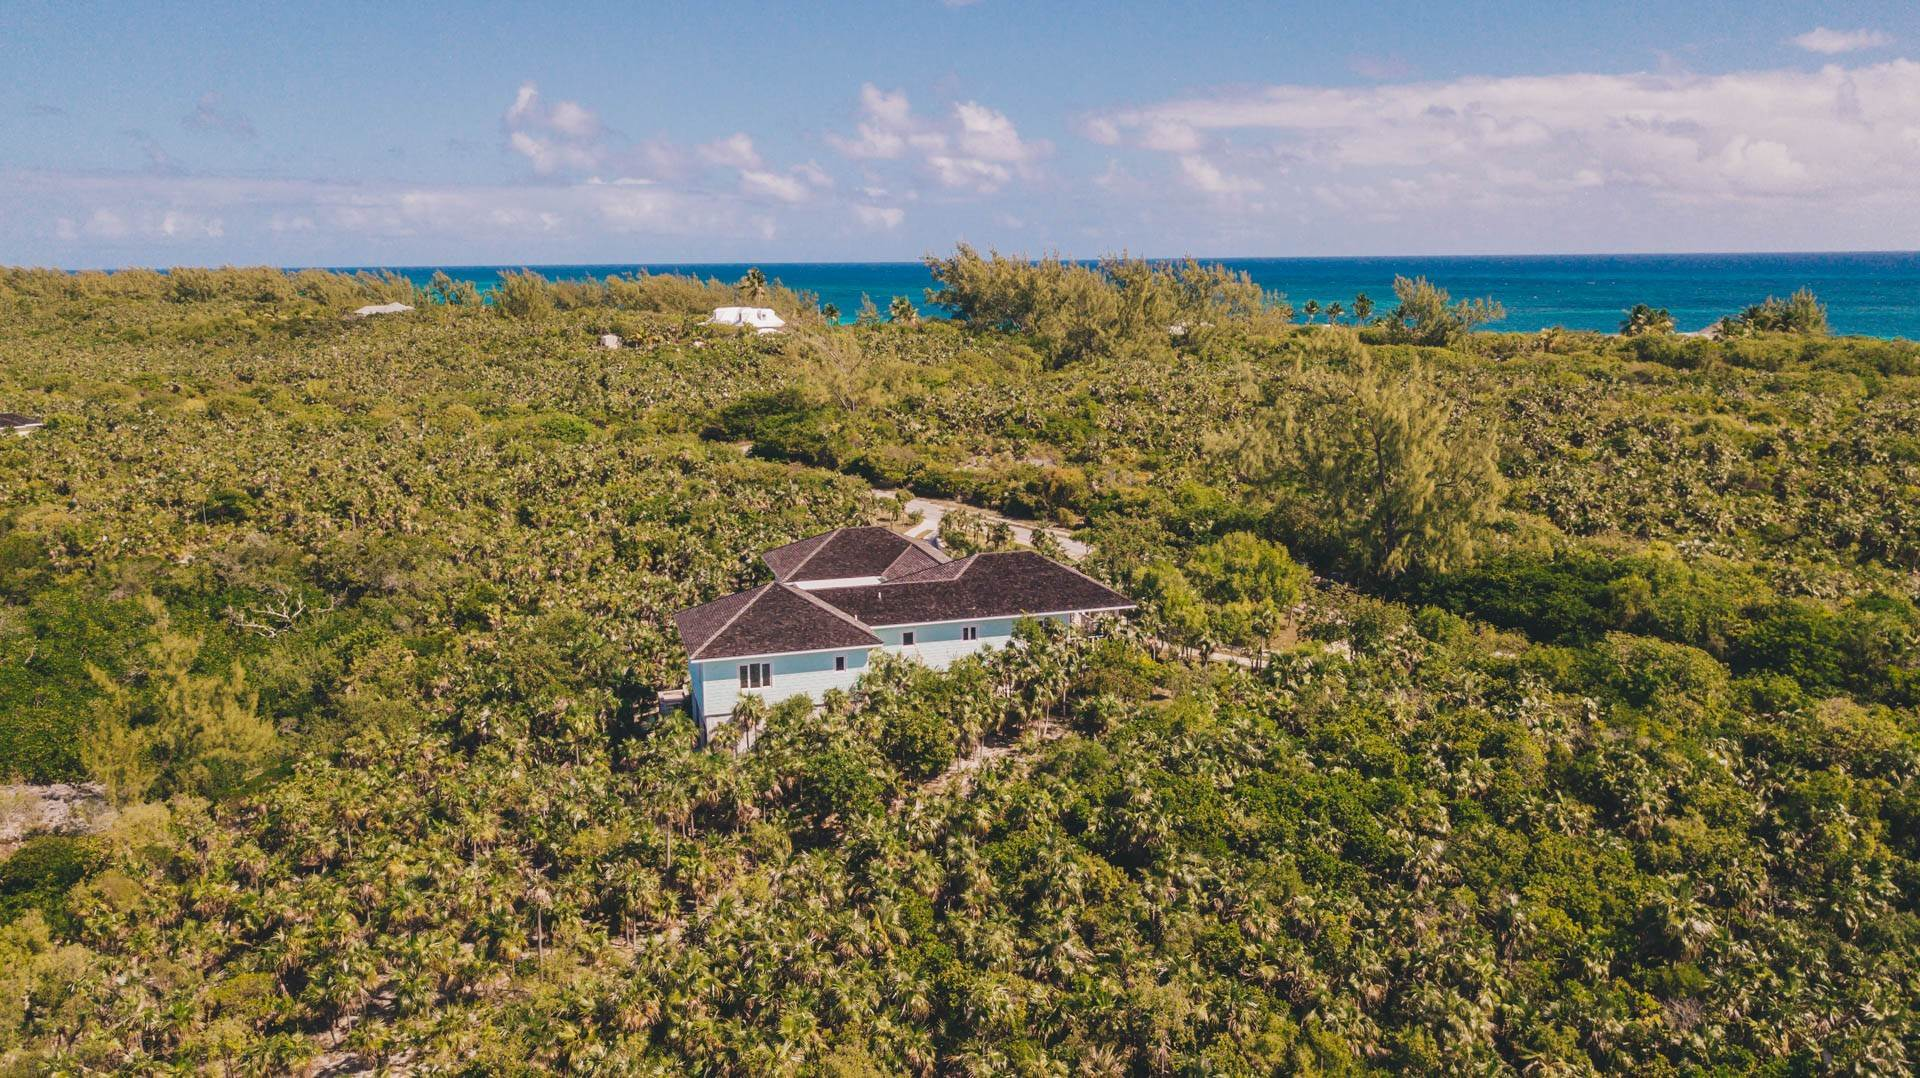 35. Single Family Homes for Sale at Savannah Sound Home - Windermere Island - MLS 44478 Windermere Island, Eleuthera, Bahamas